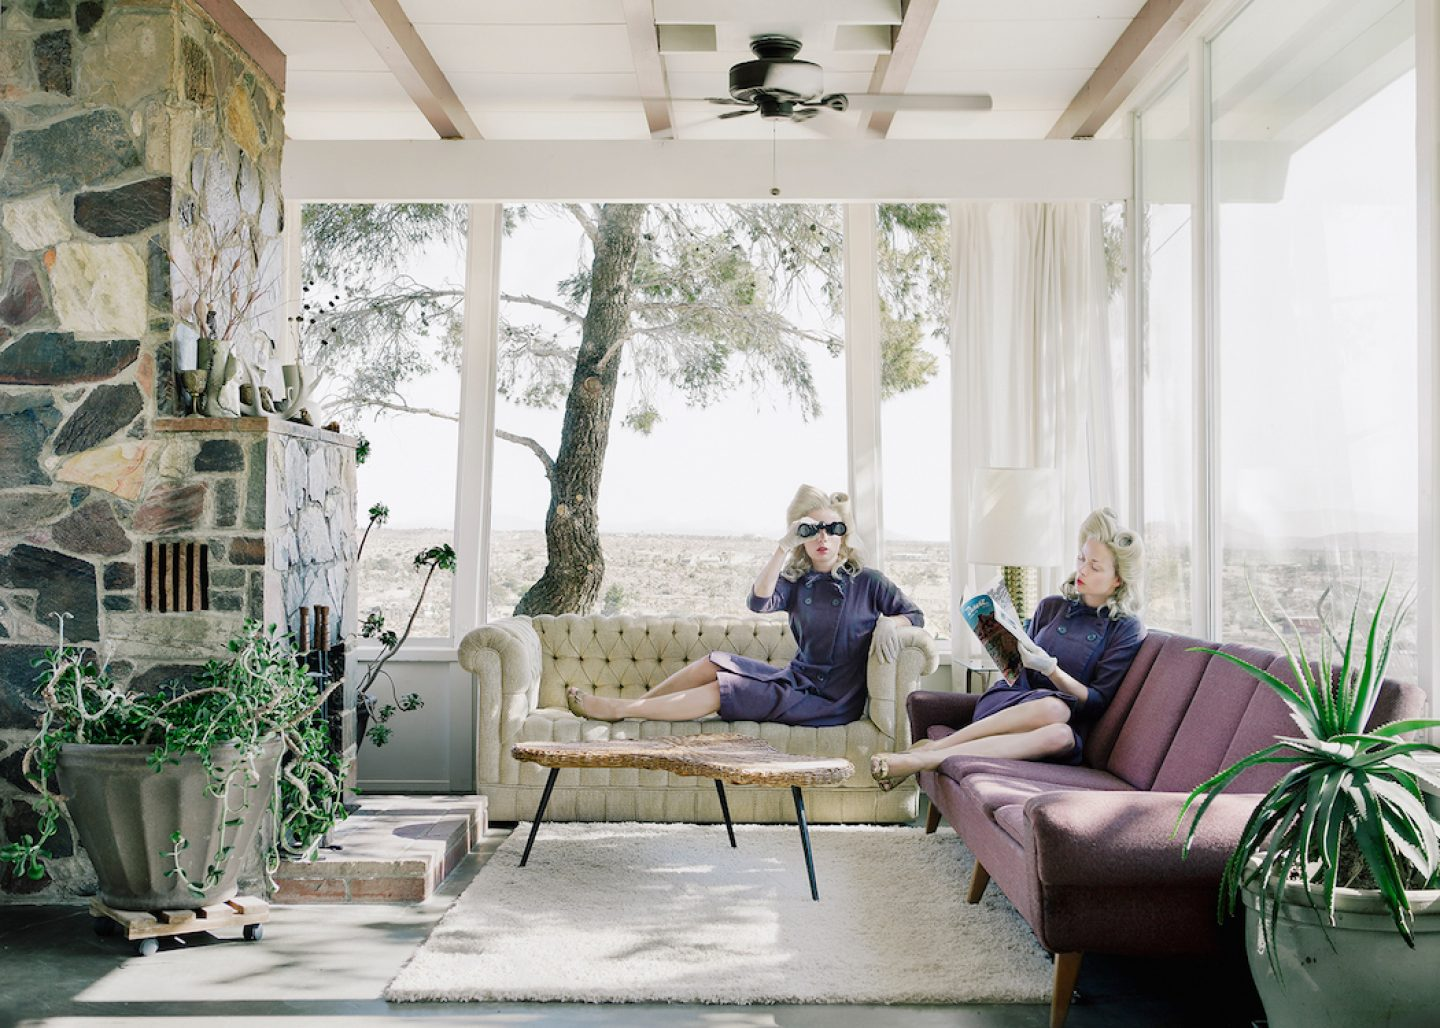 anjaniemi_photography-The Desert House © Anja Niemi